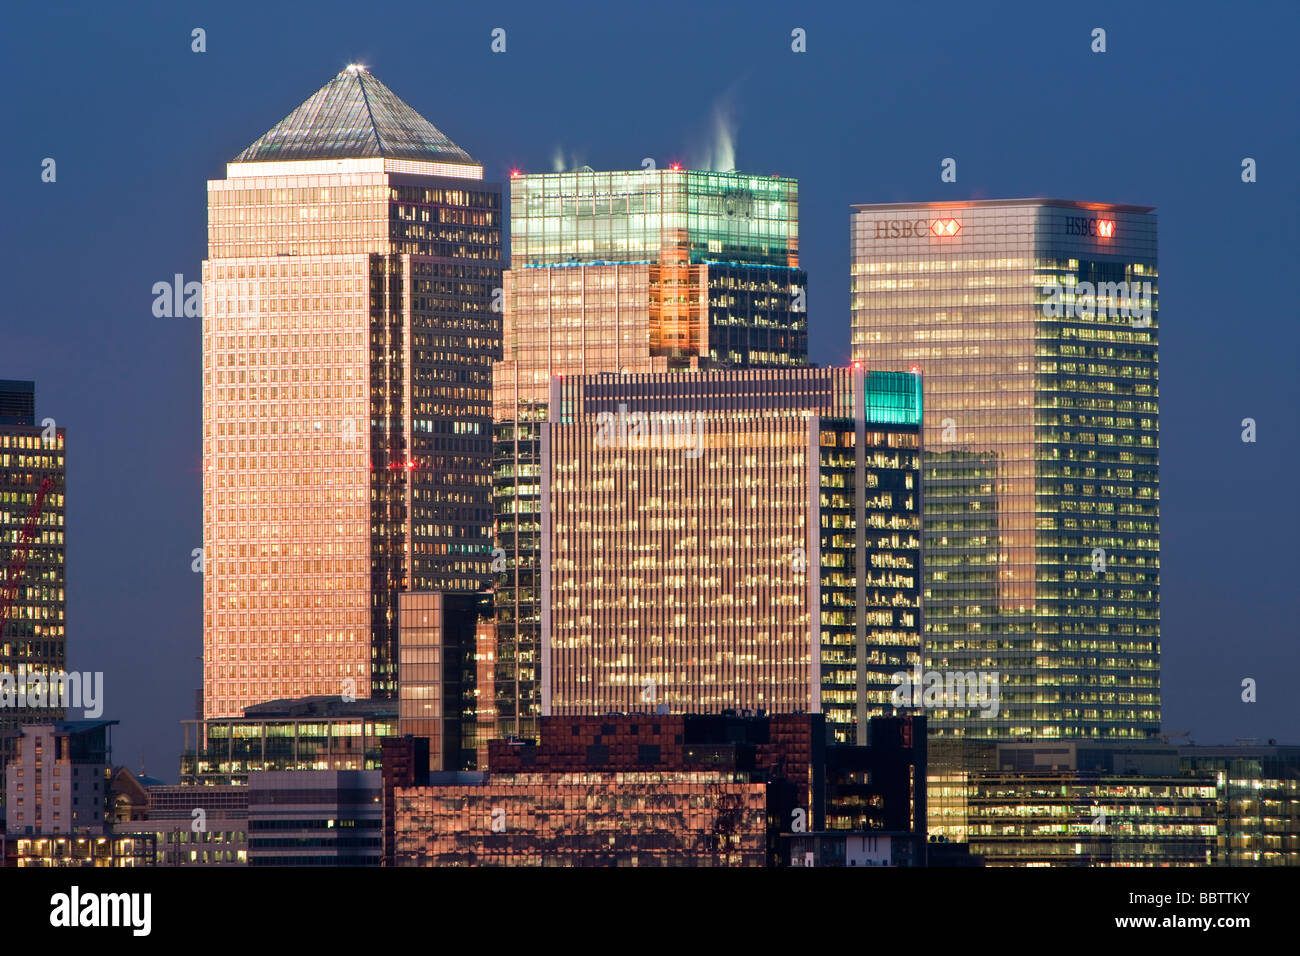 Bank buildings in the Financial centre of Canary Wharf London England United Kingdom - Stock Image